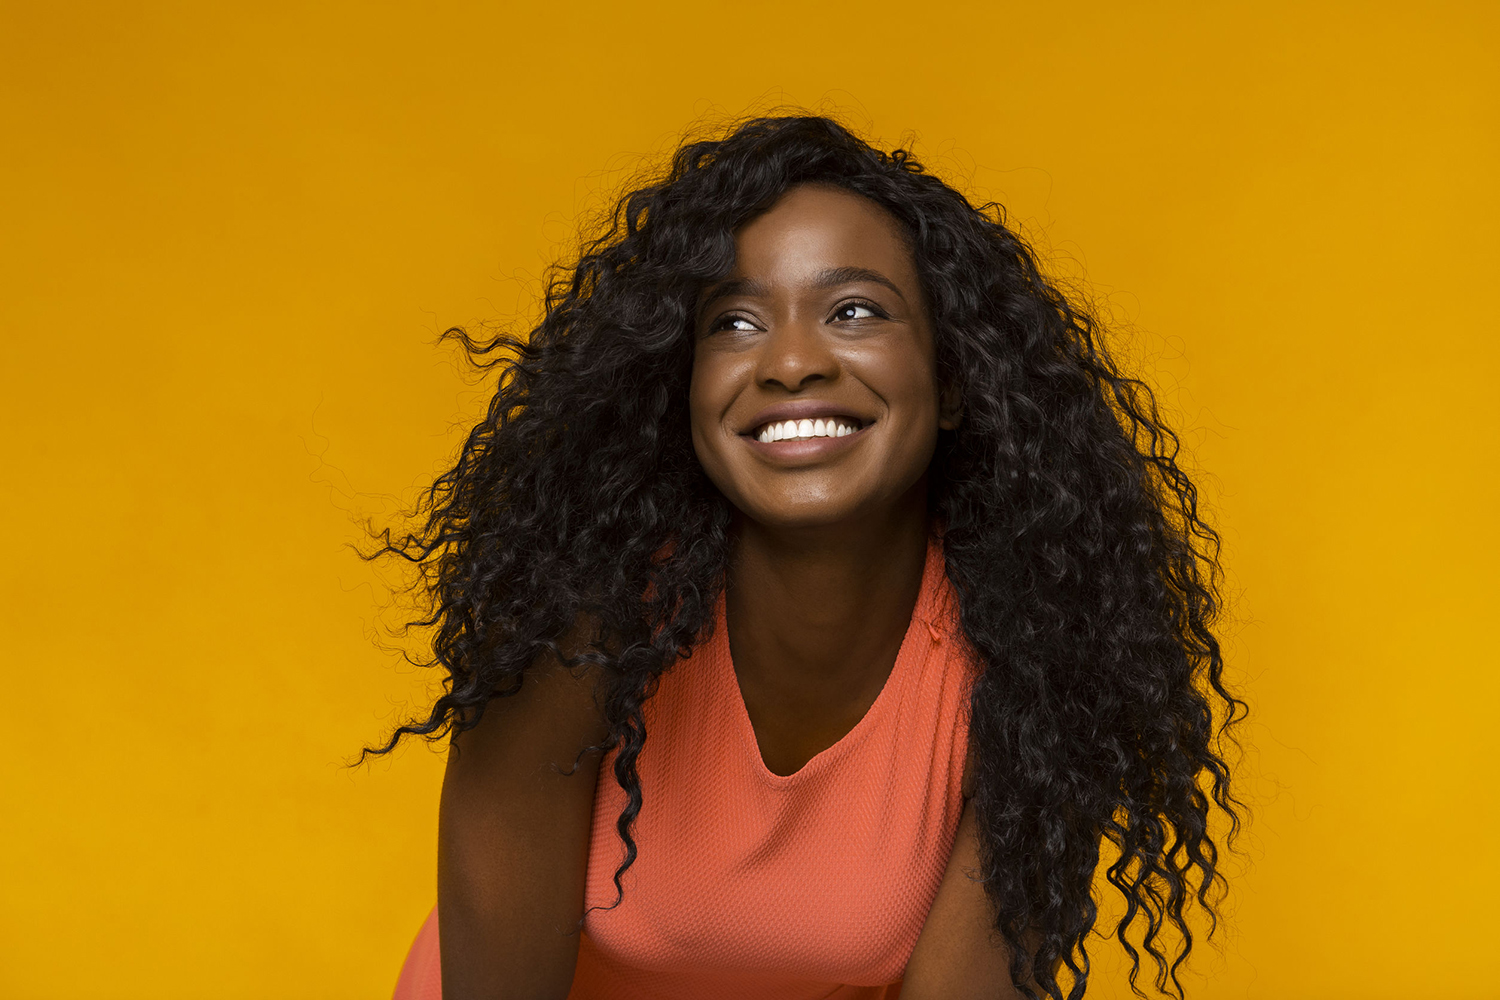 Excited african woman with wide smile looking aside